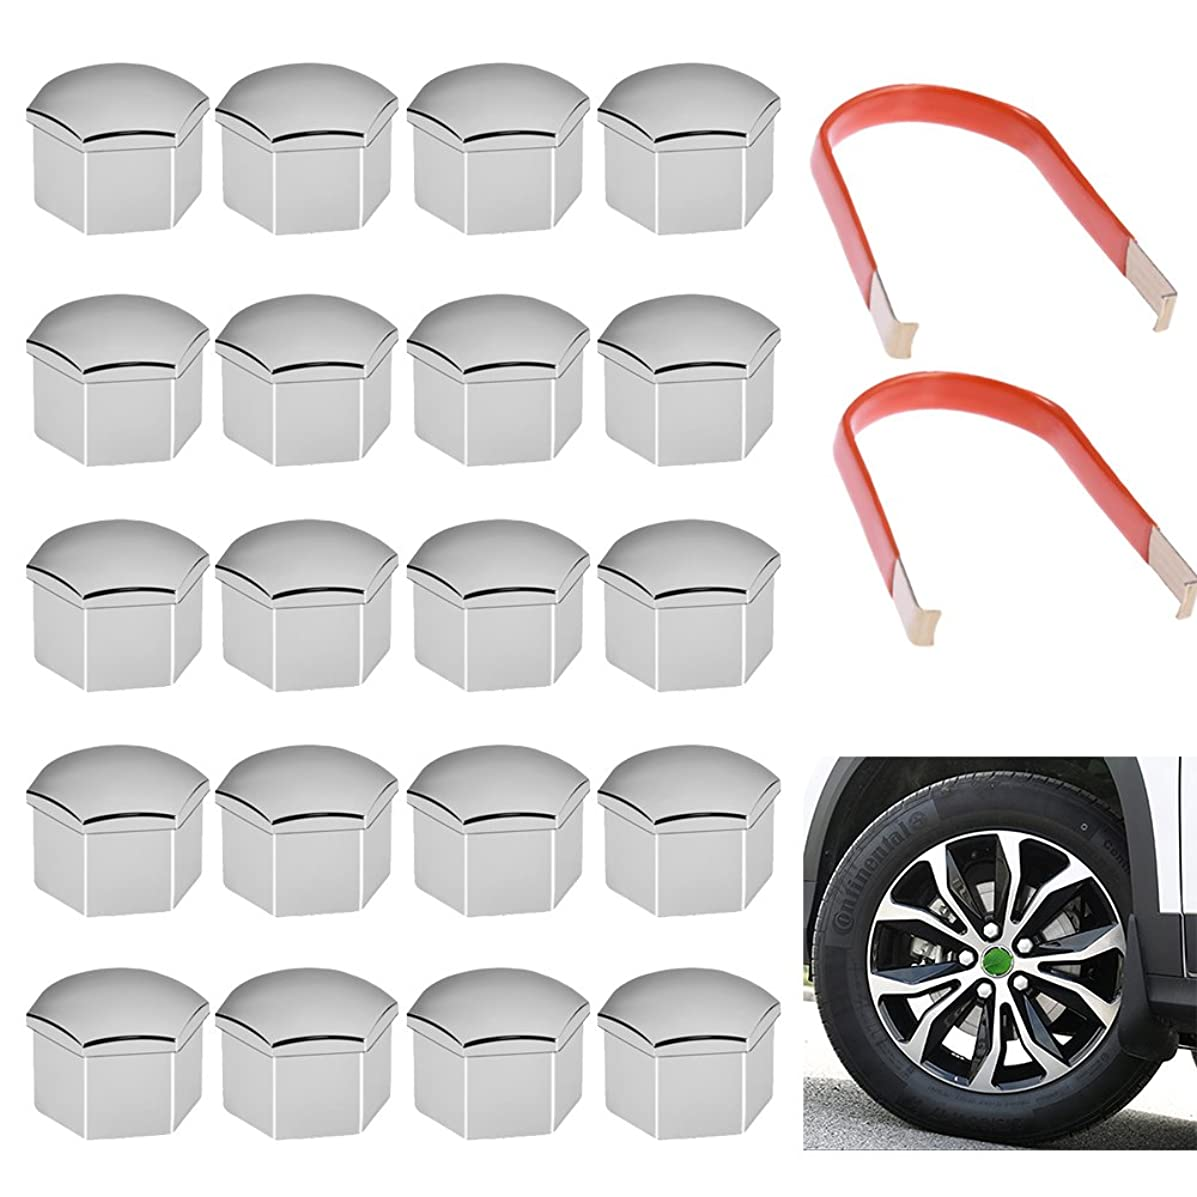 17MM CHROME WHEEL LUG NUT BOLT COVER CAPS WITH + Removal Tool For VW SKODA AUDI BMW MERCEDES